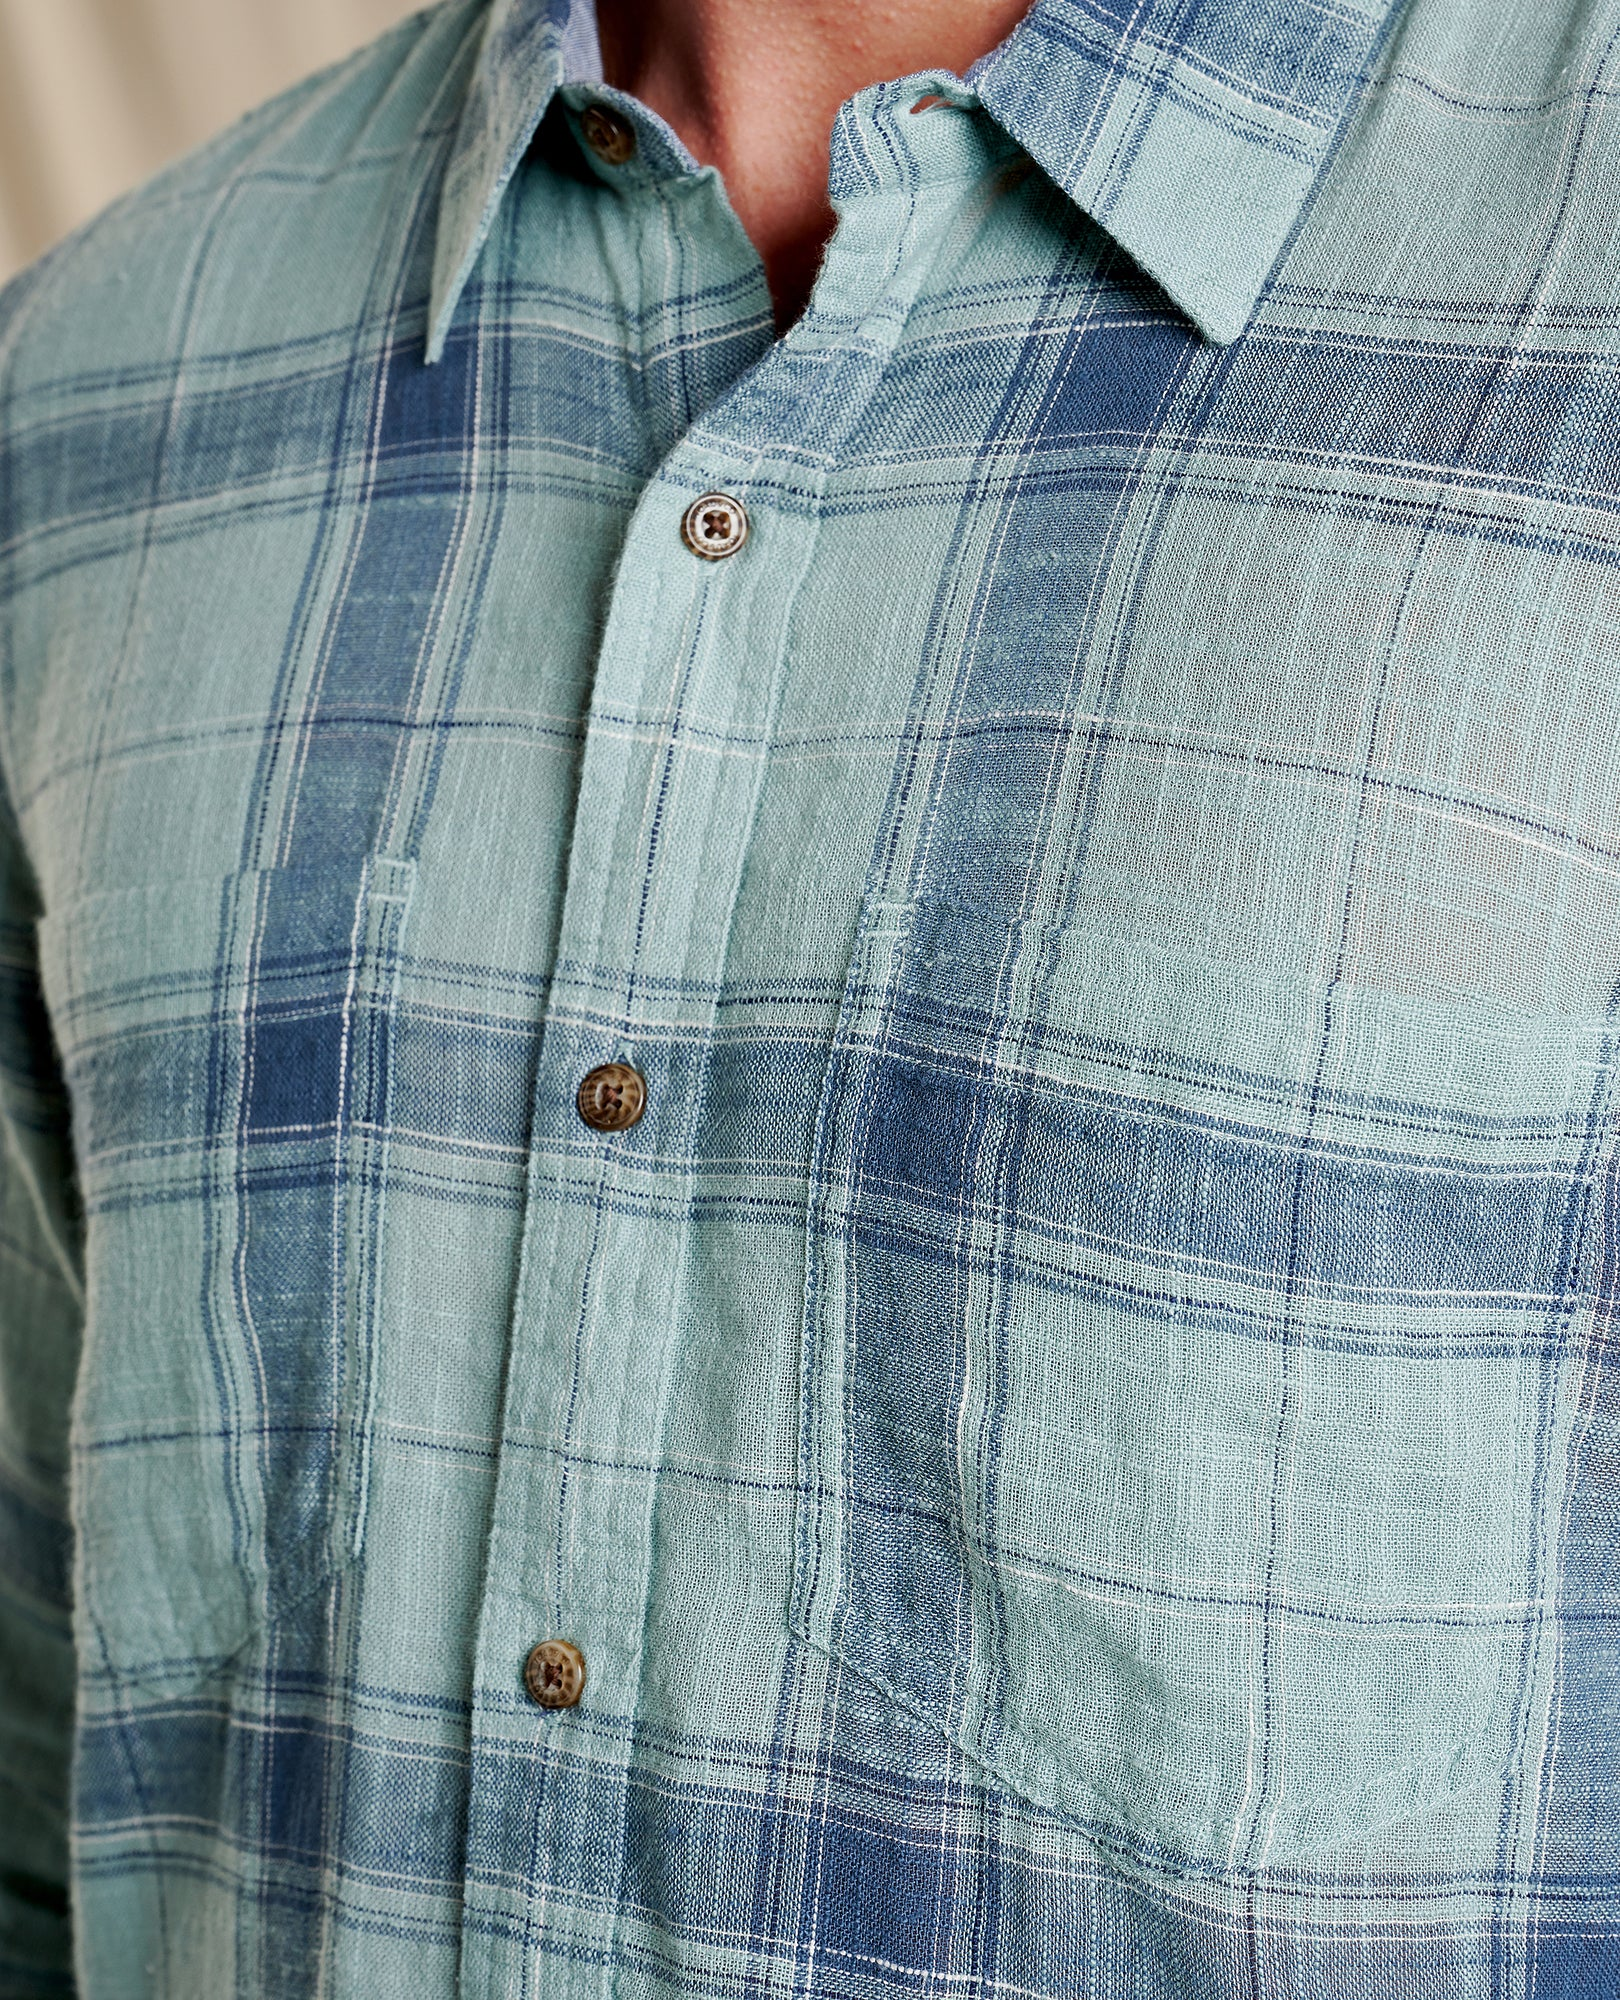 Linen-like fabric with two pockets and blue patterns.